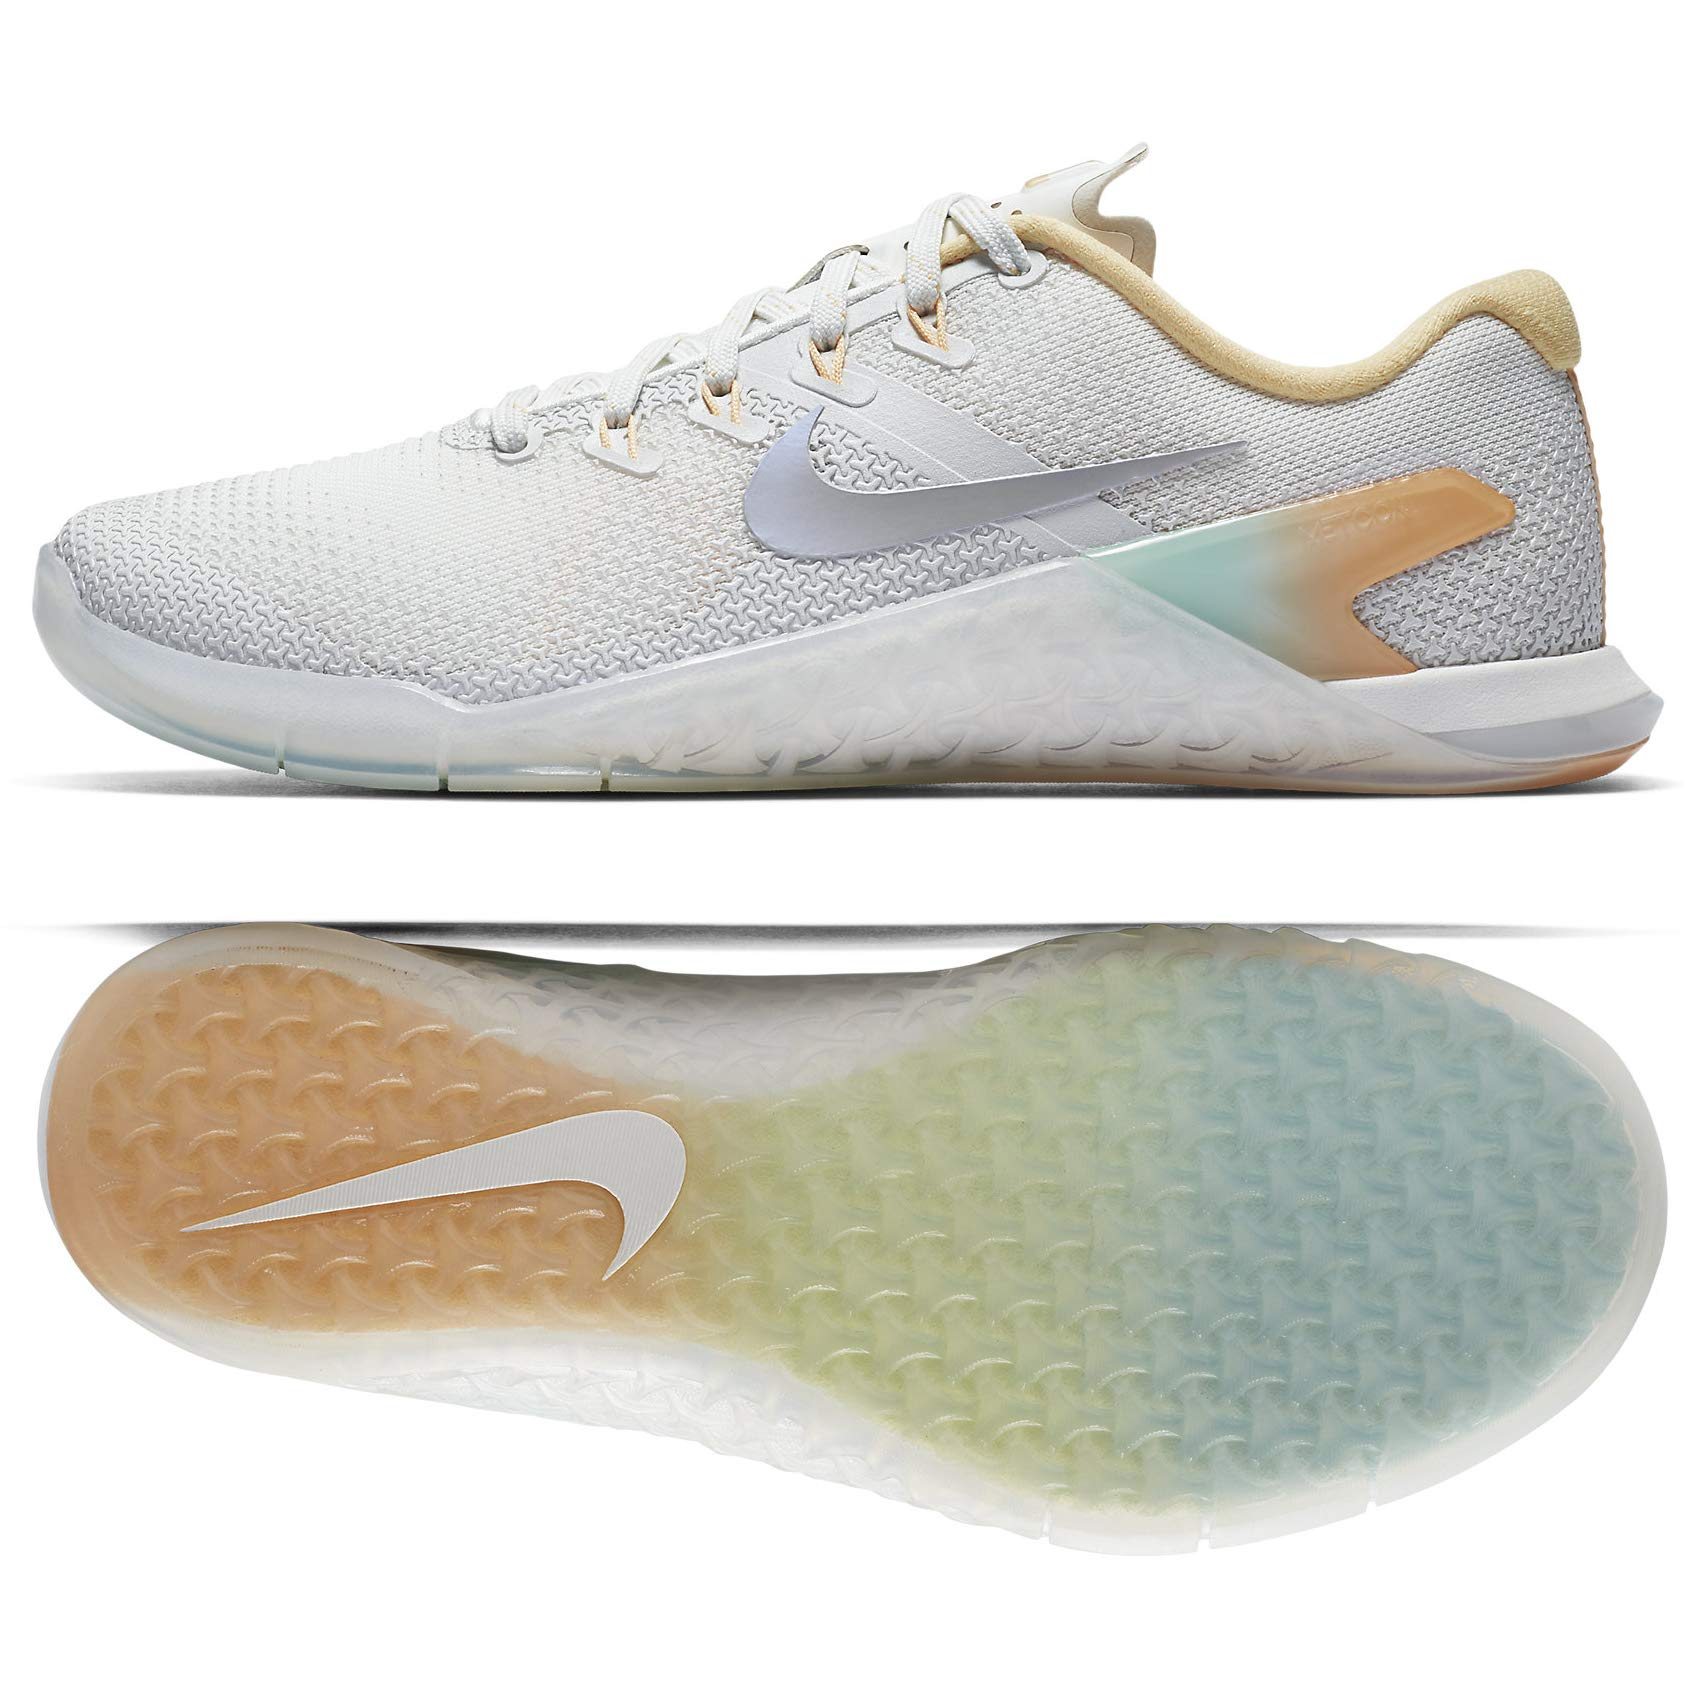 a85cb7222eced9 Galleon - NIKE WMNS Metcon 4 Rise AH8184-100 White Wolf Grey Women s  Crossfit Training Shoes (7 B US)